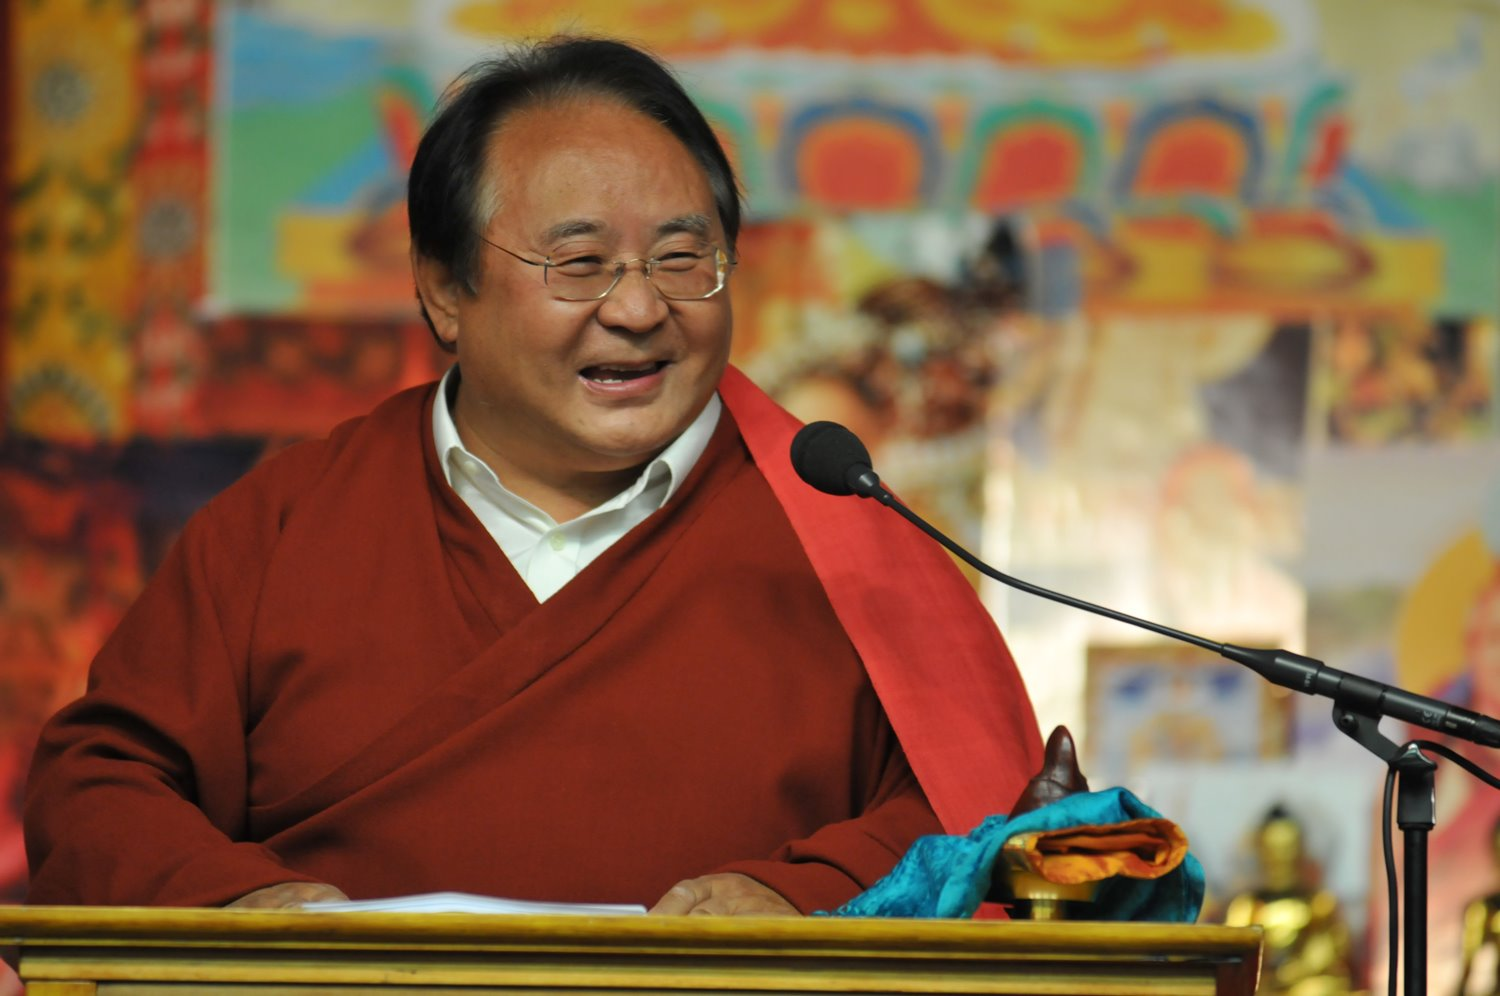 Sogyal Rinpoche: End of bestselling Tibetan Buddhist master scarred by abuse allegations